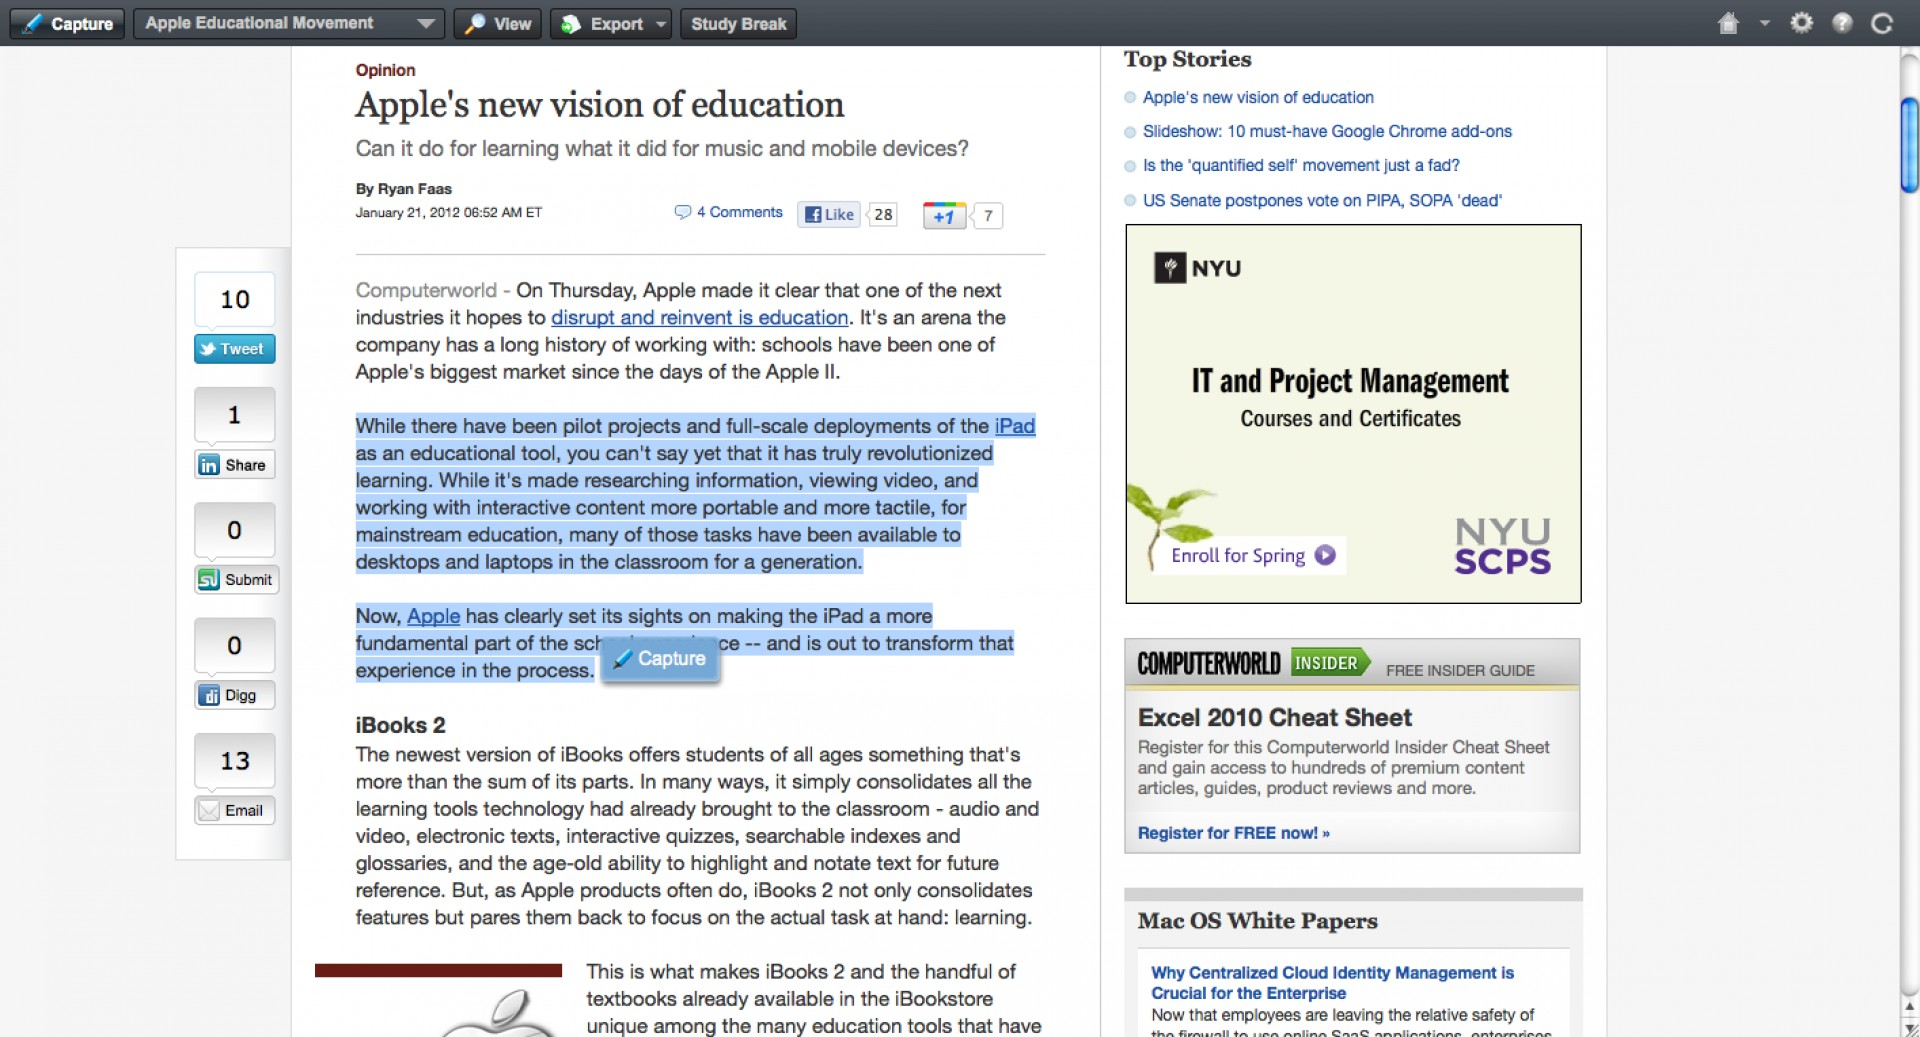 020 Essay Example Screenshot2012 21at11 15am How To Cite Website Stupendous In A Mla Parenthetical Citation 1920